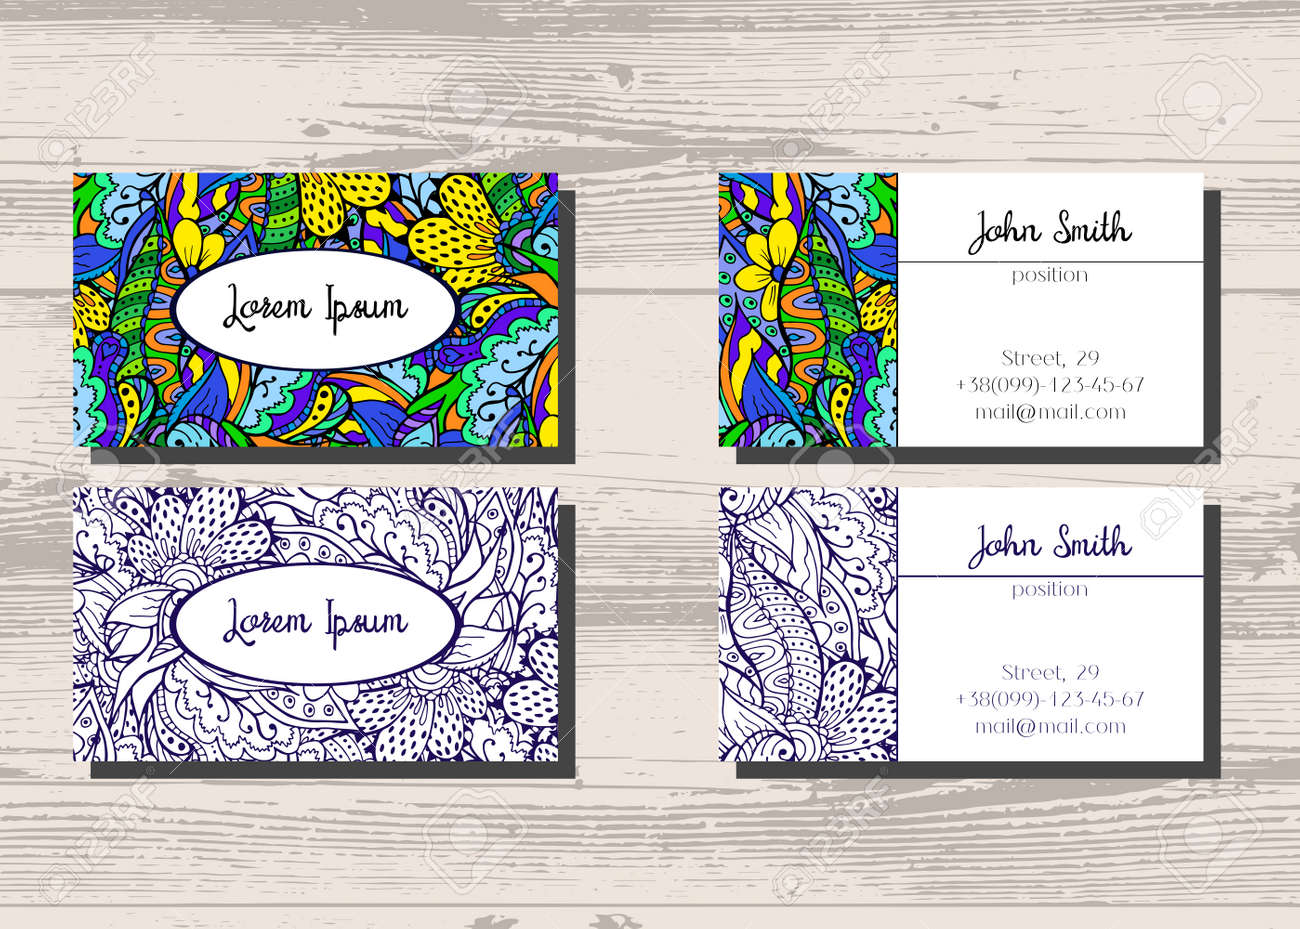 Business Cards With Two Sides For Your Company And Professionals ...